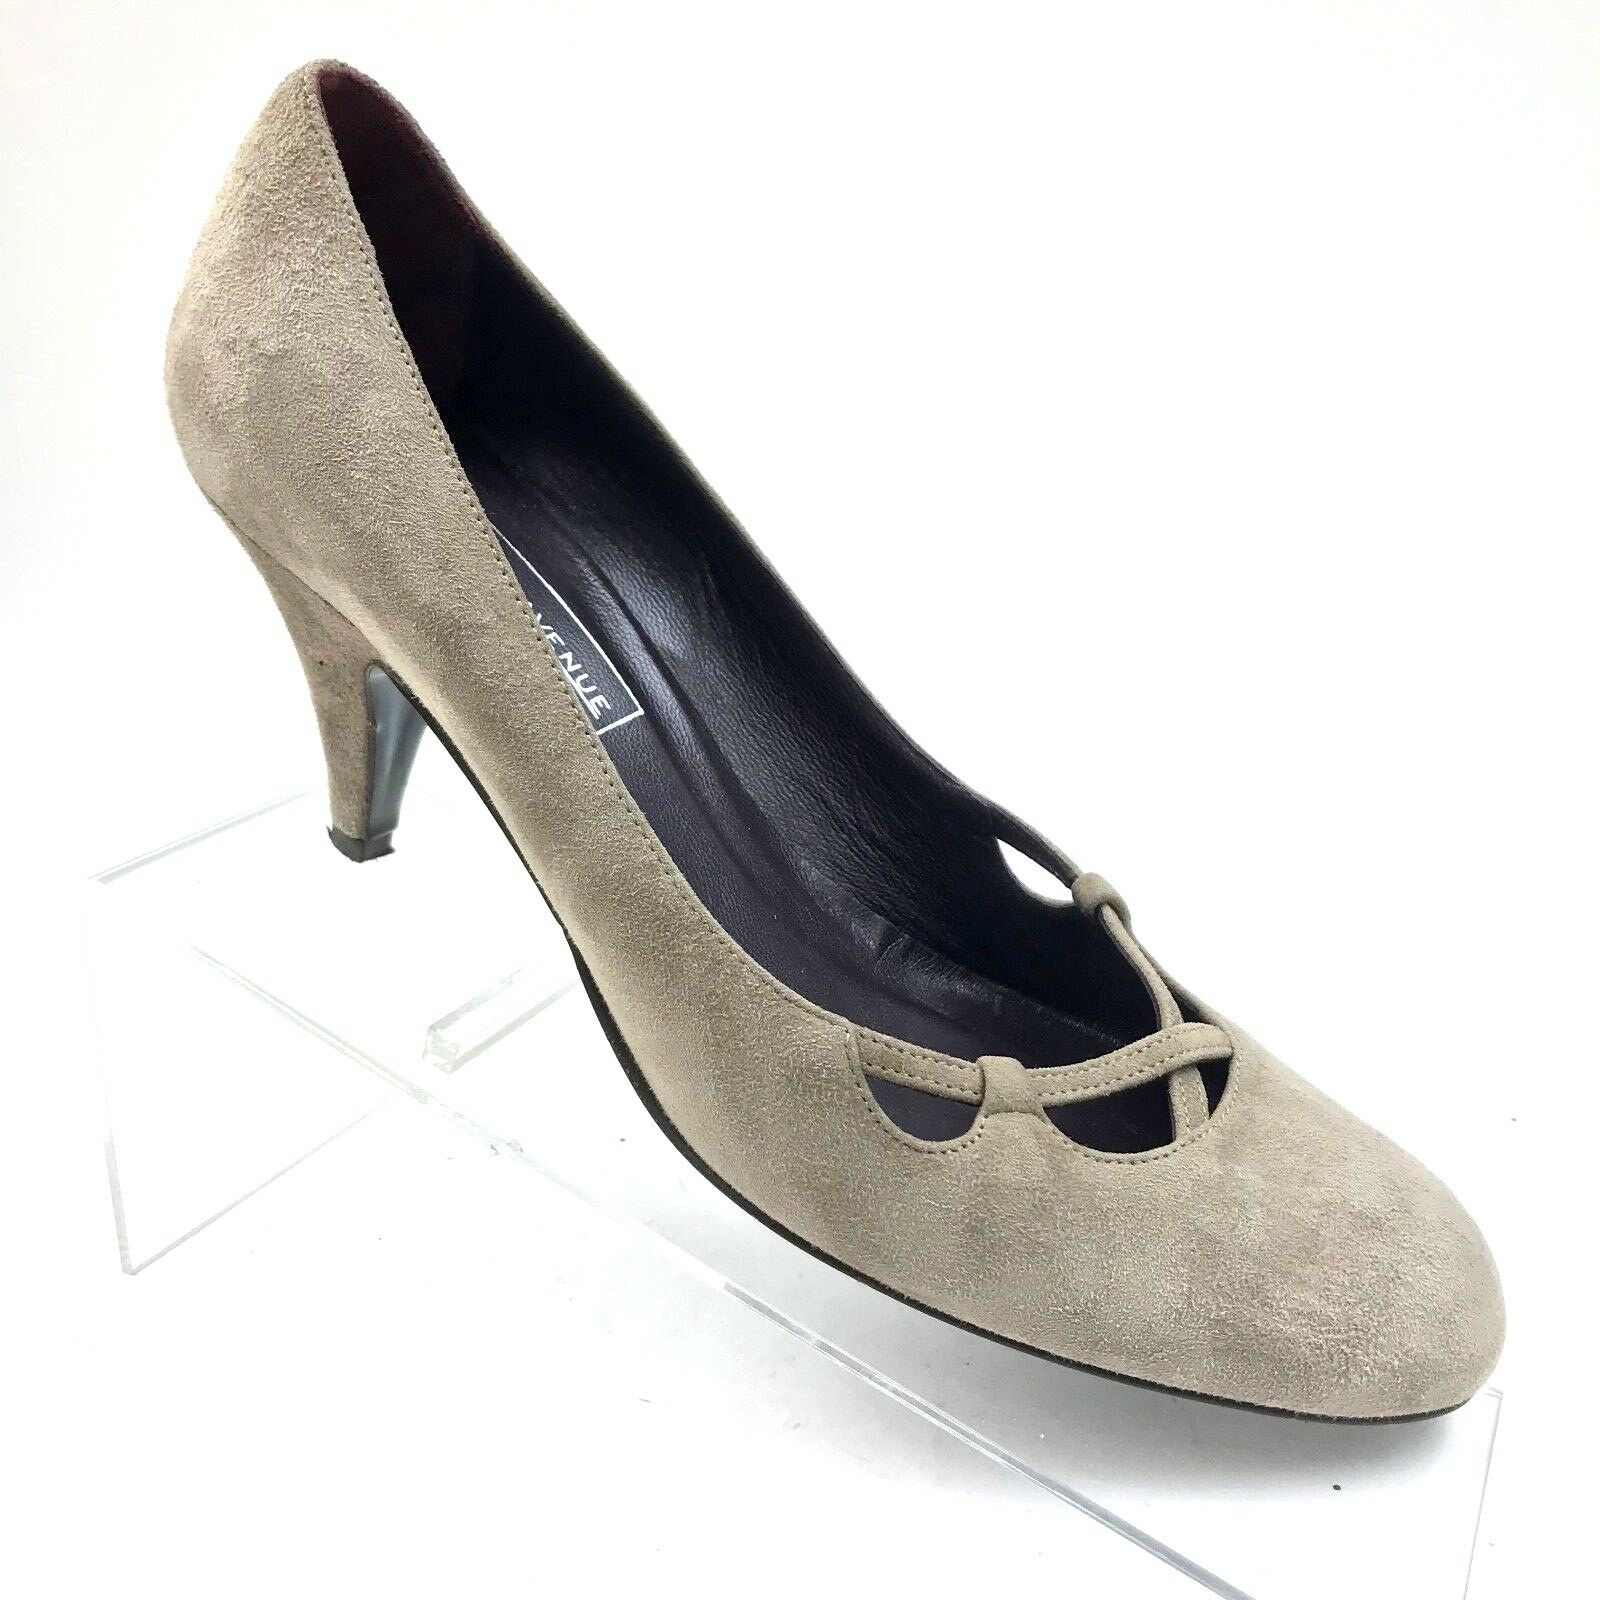 Saks Fifth Avenue Women's Size 8 B Medium Clay Fine Suede Pumps Heels  208